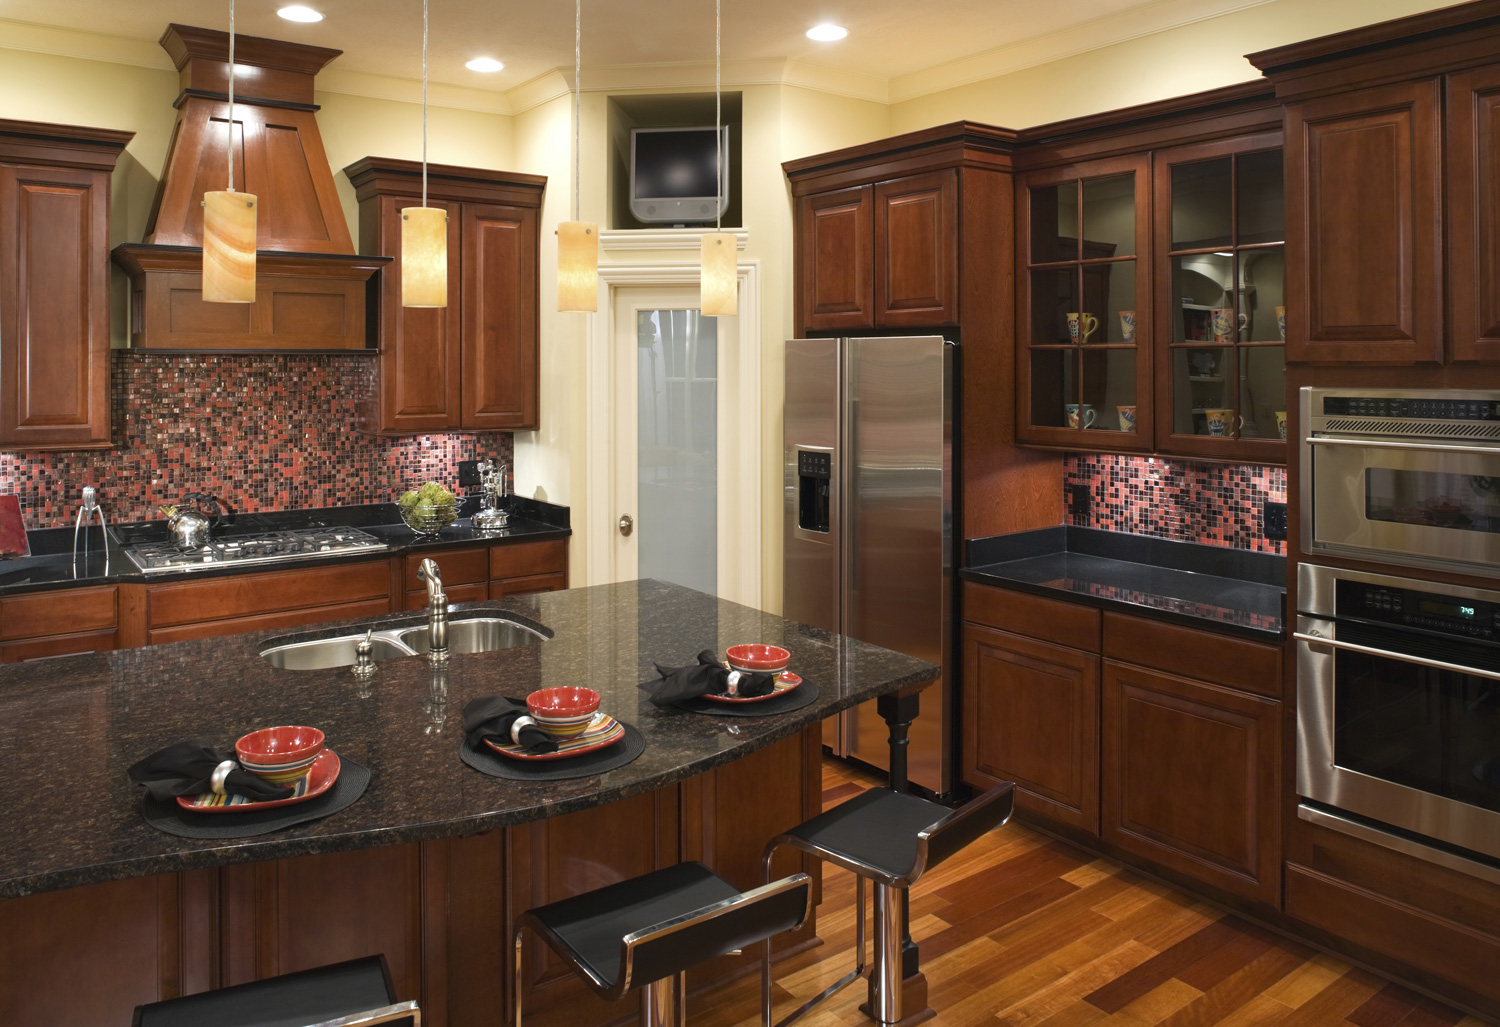 Aip Interior Design And Kitchen Remodeling Ideas